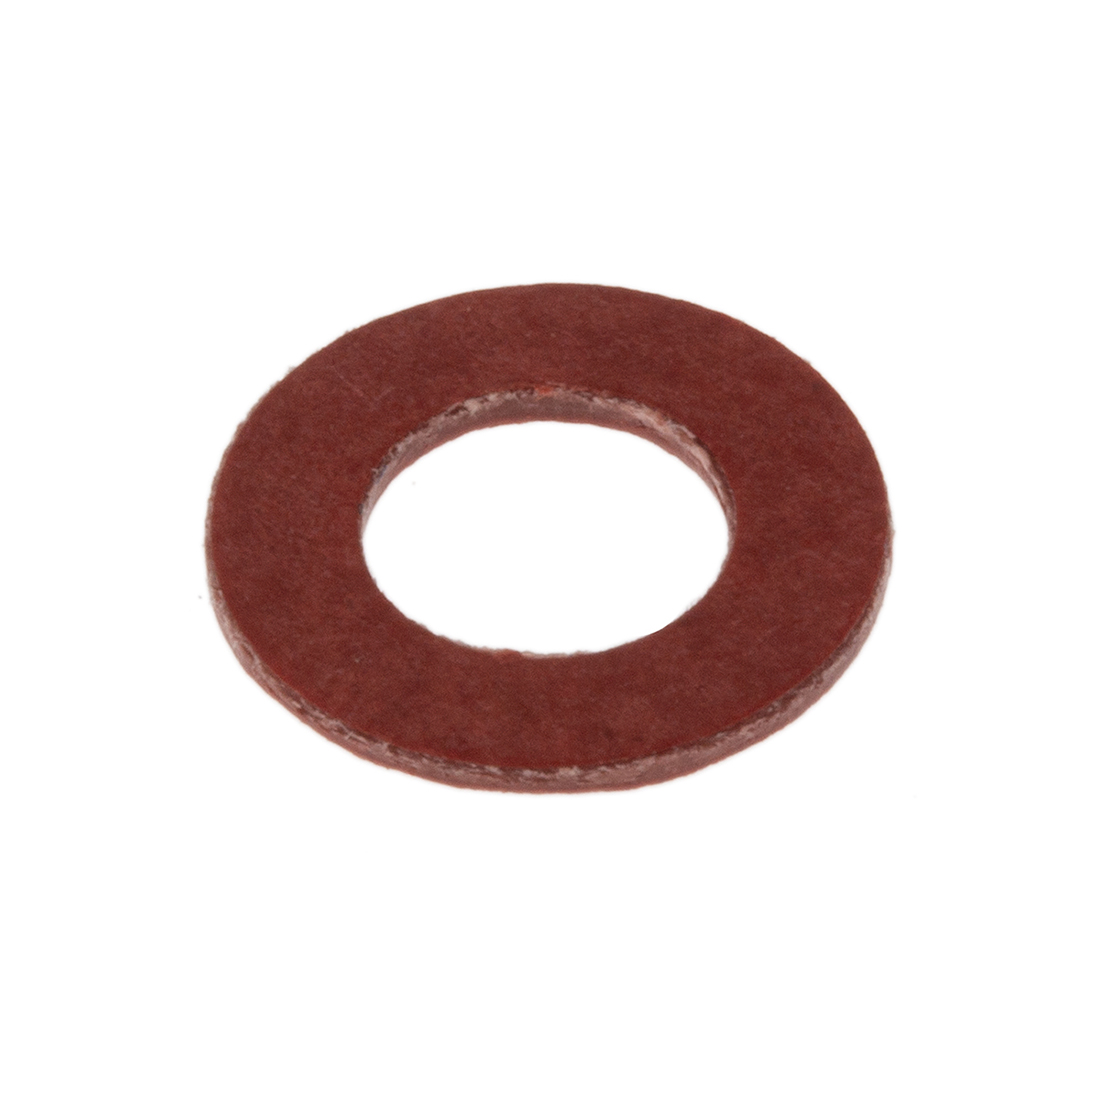 M5 Plain Vulcanised Fibre Tap Washer, 0.8mm Thickness - 250 Pack